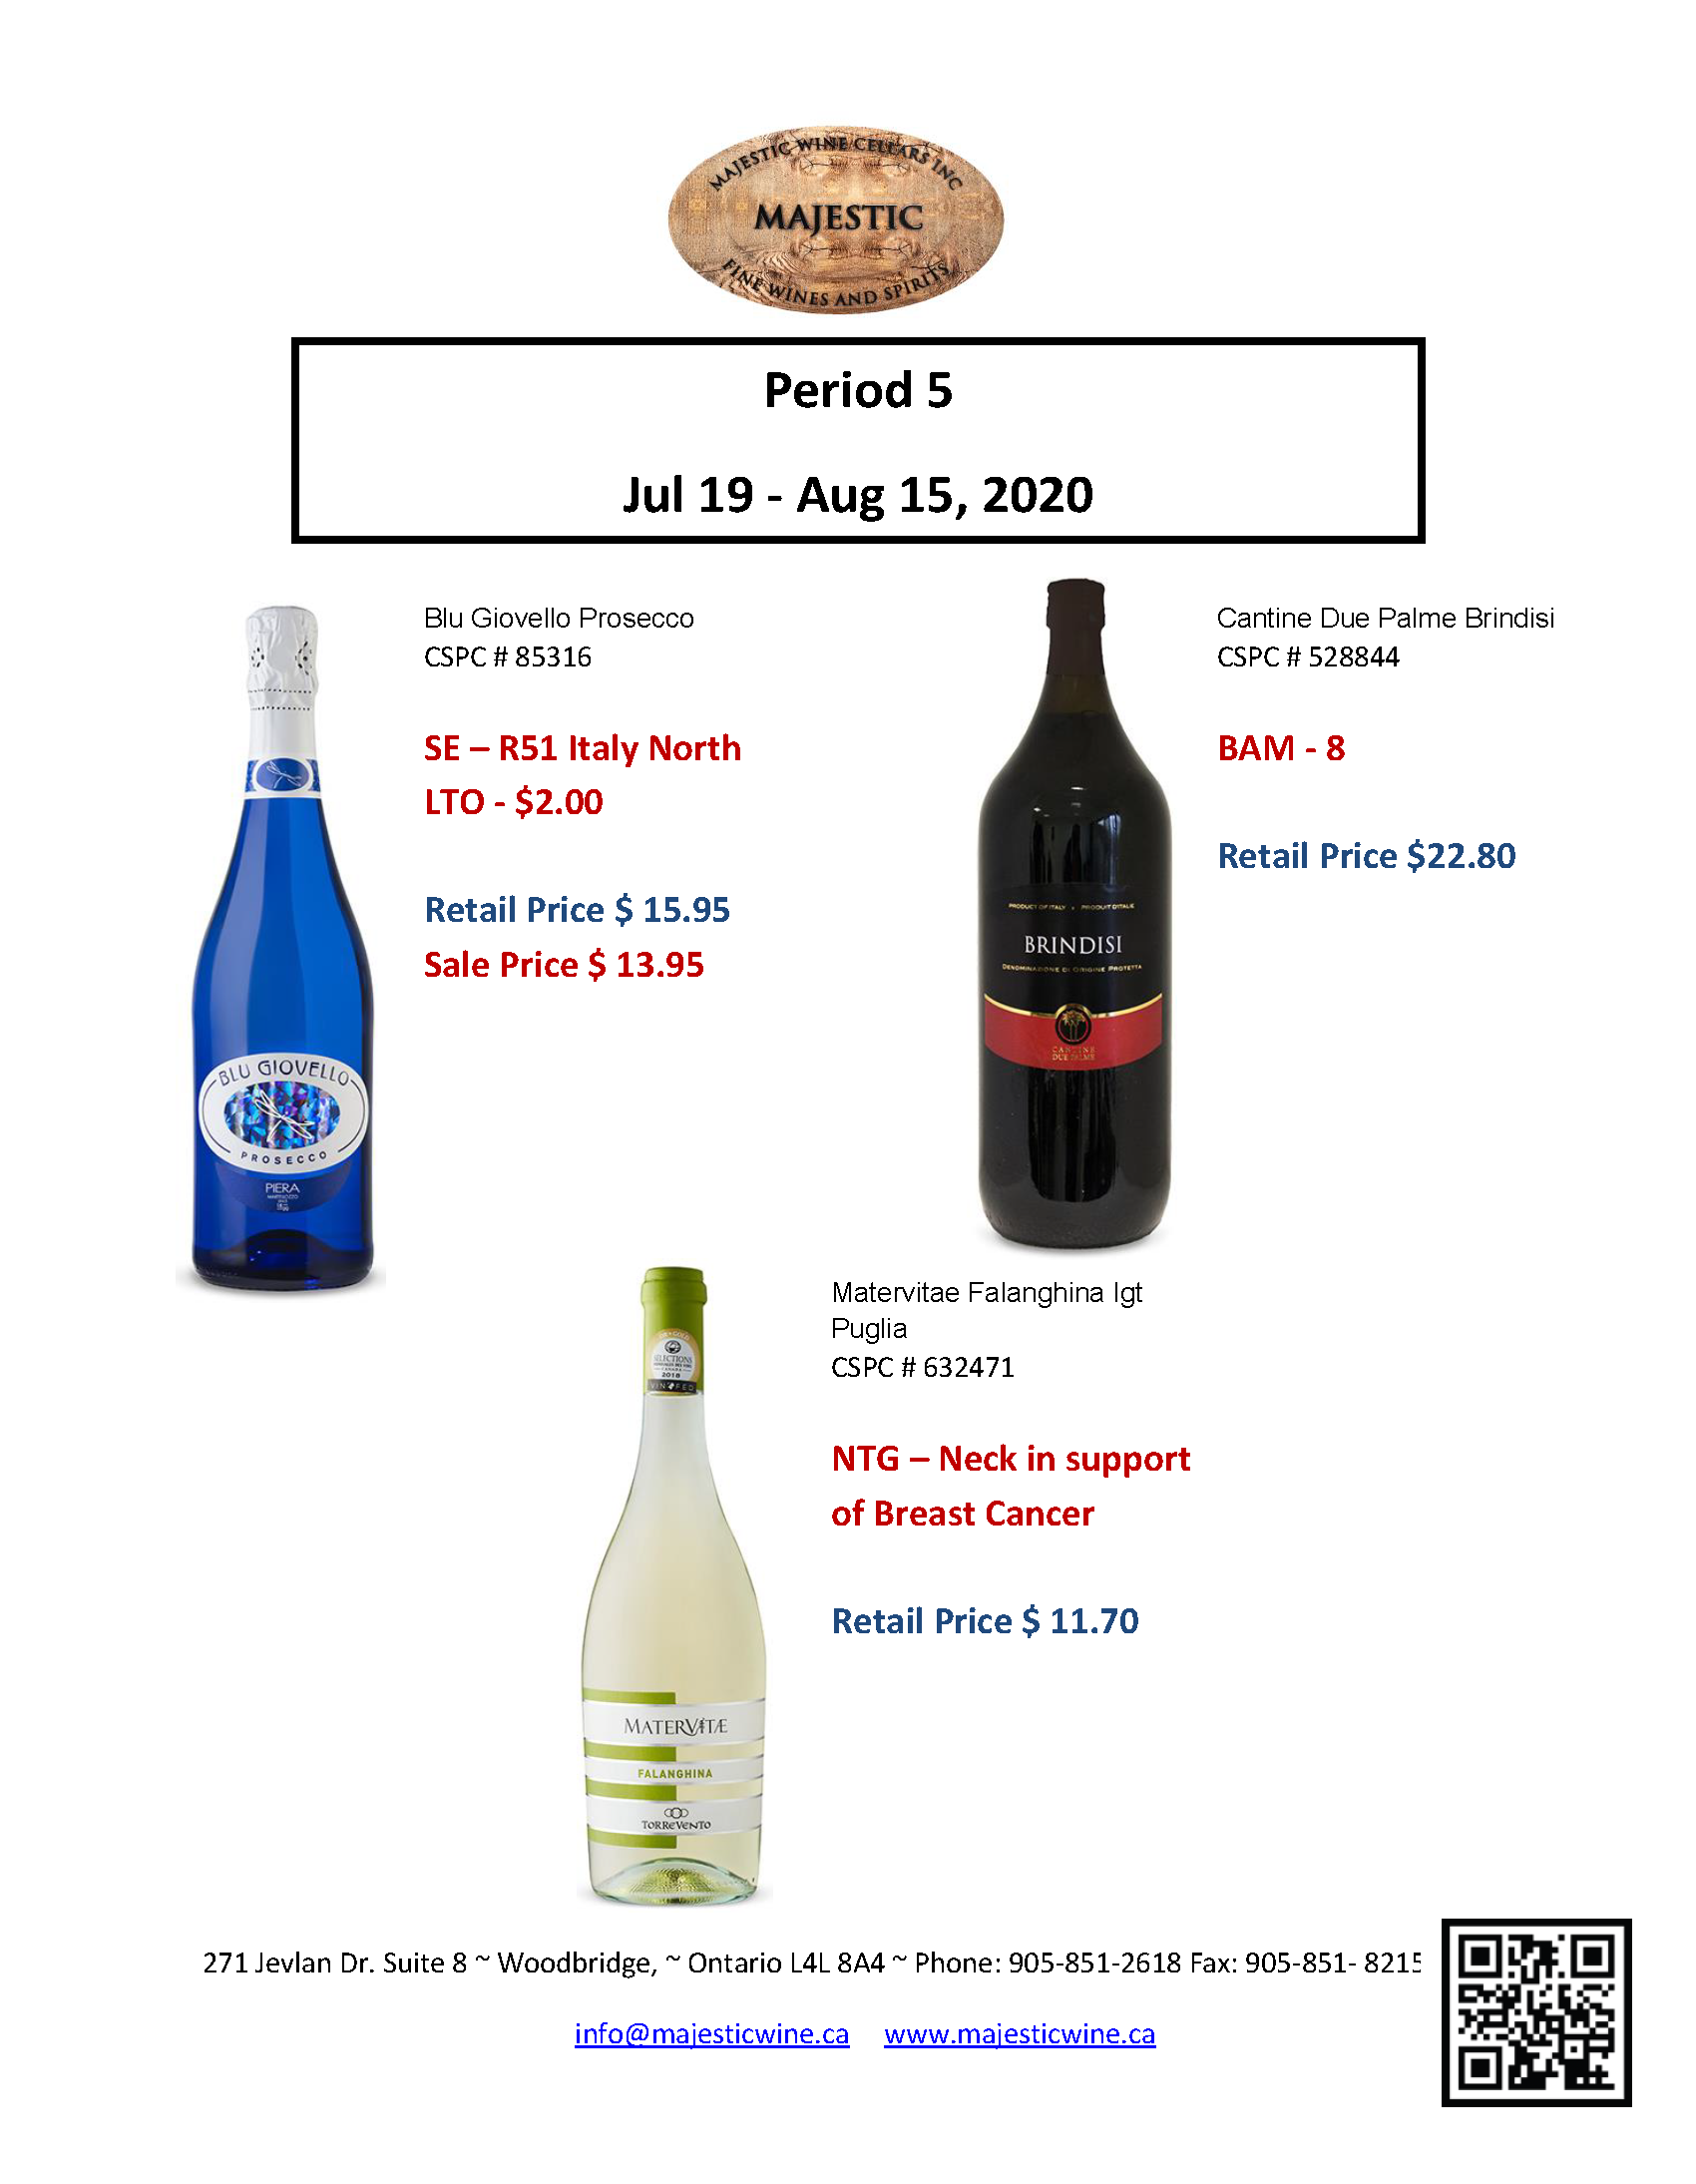 Period 5 | July 19th - August 15th Promotion